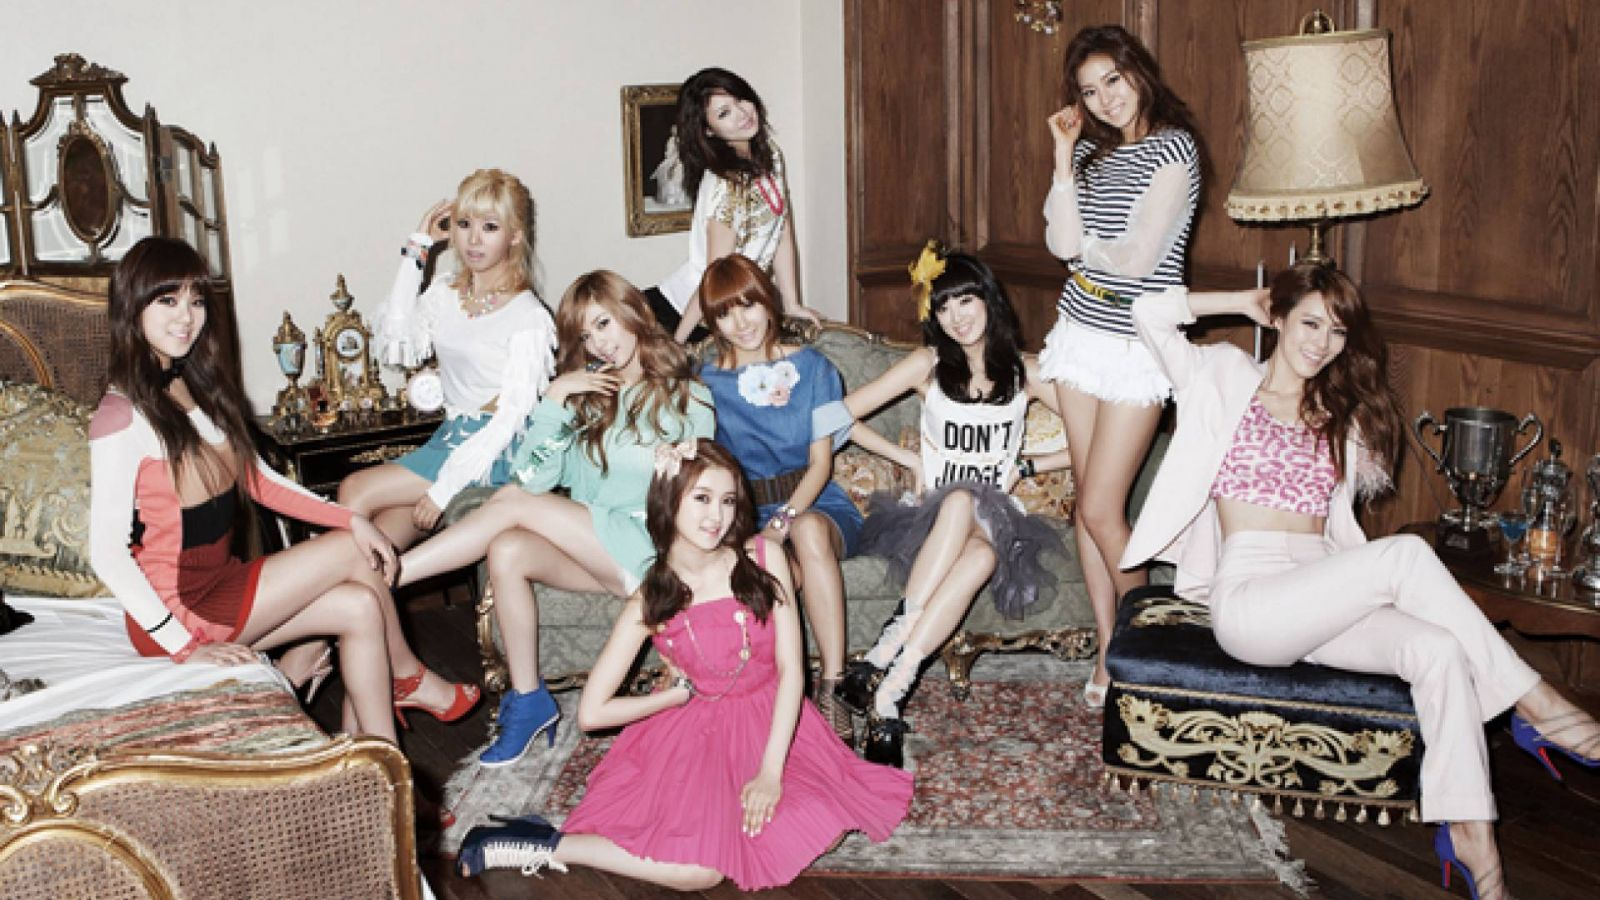 After School revient avec un album de Noël © After School